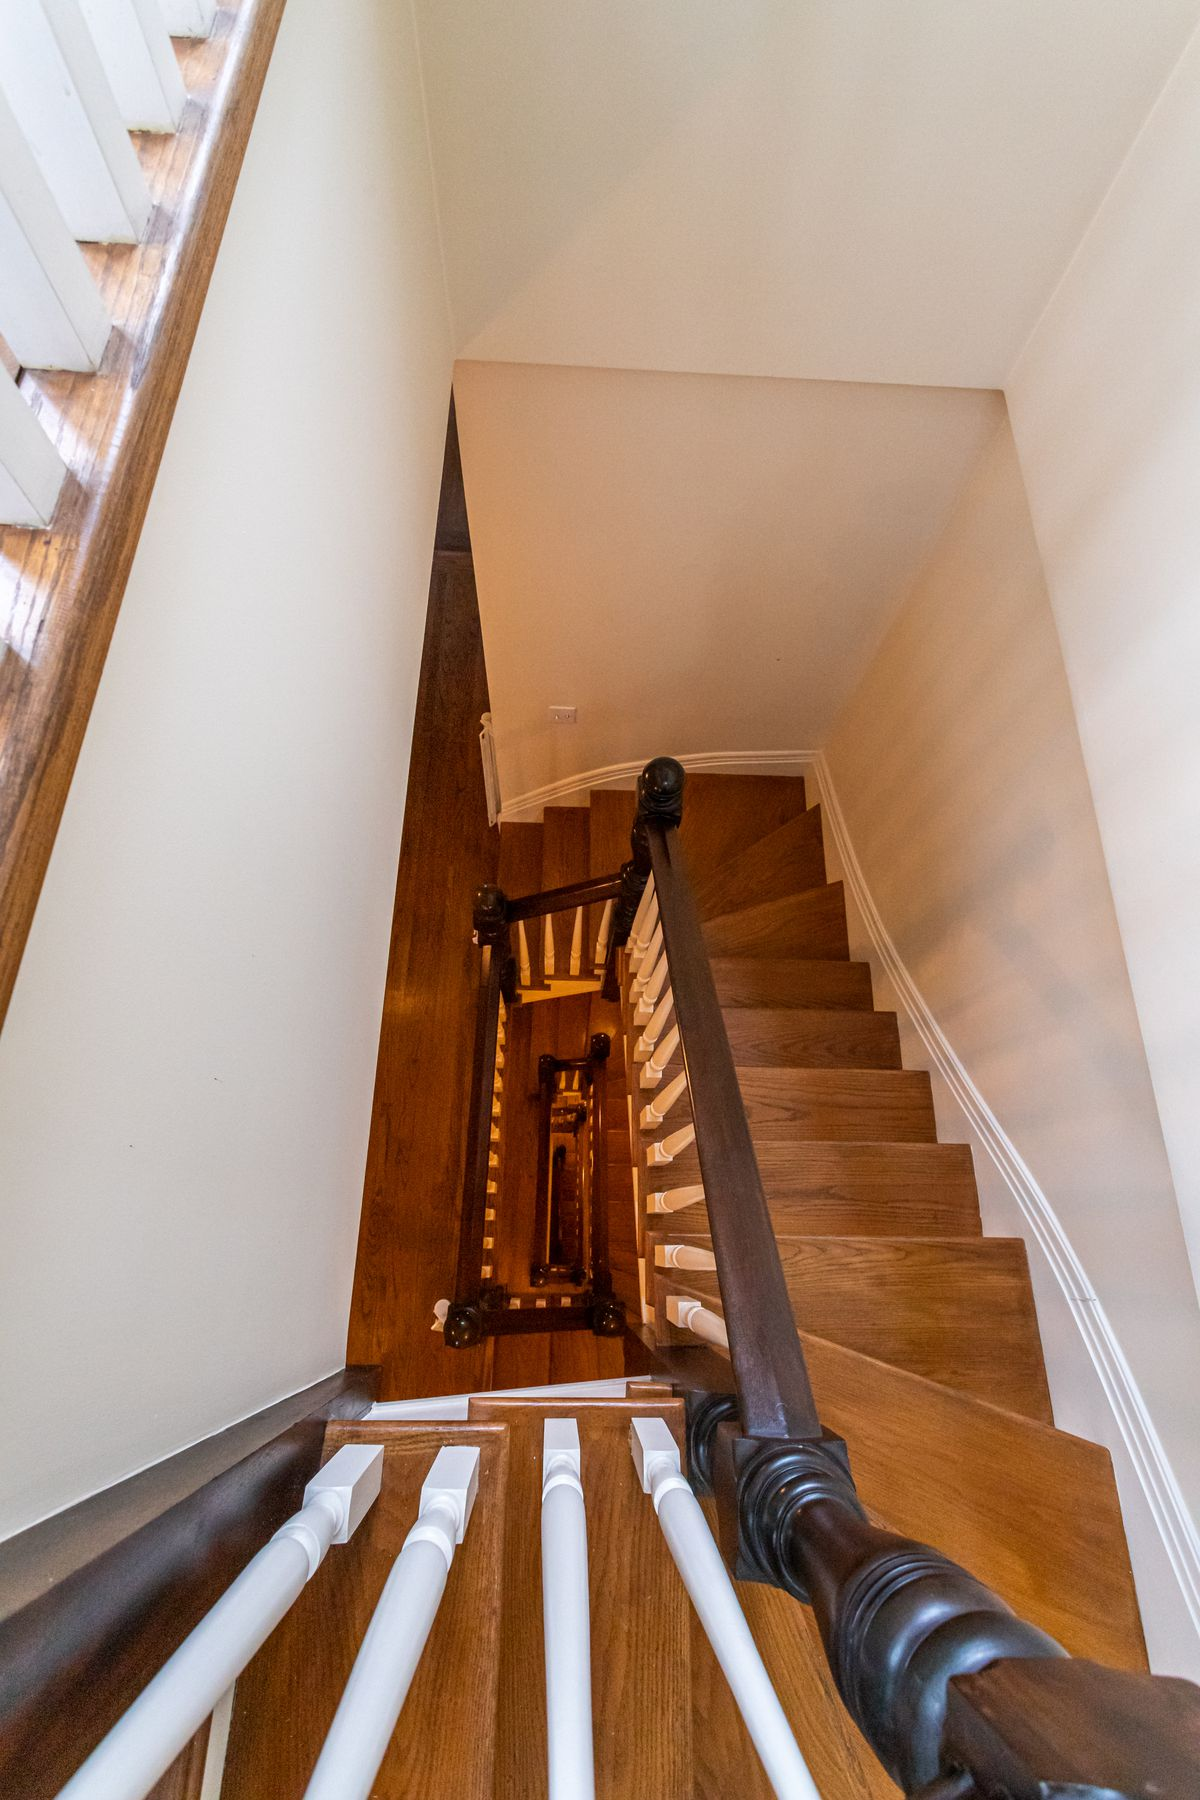 A turned oak staircase.